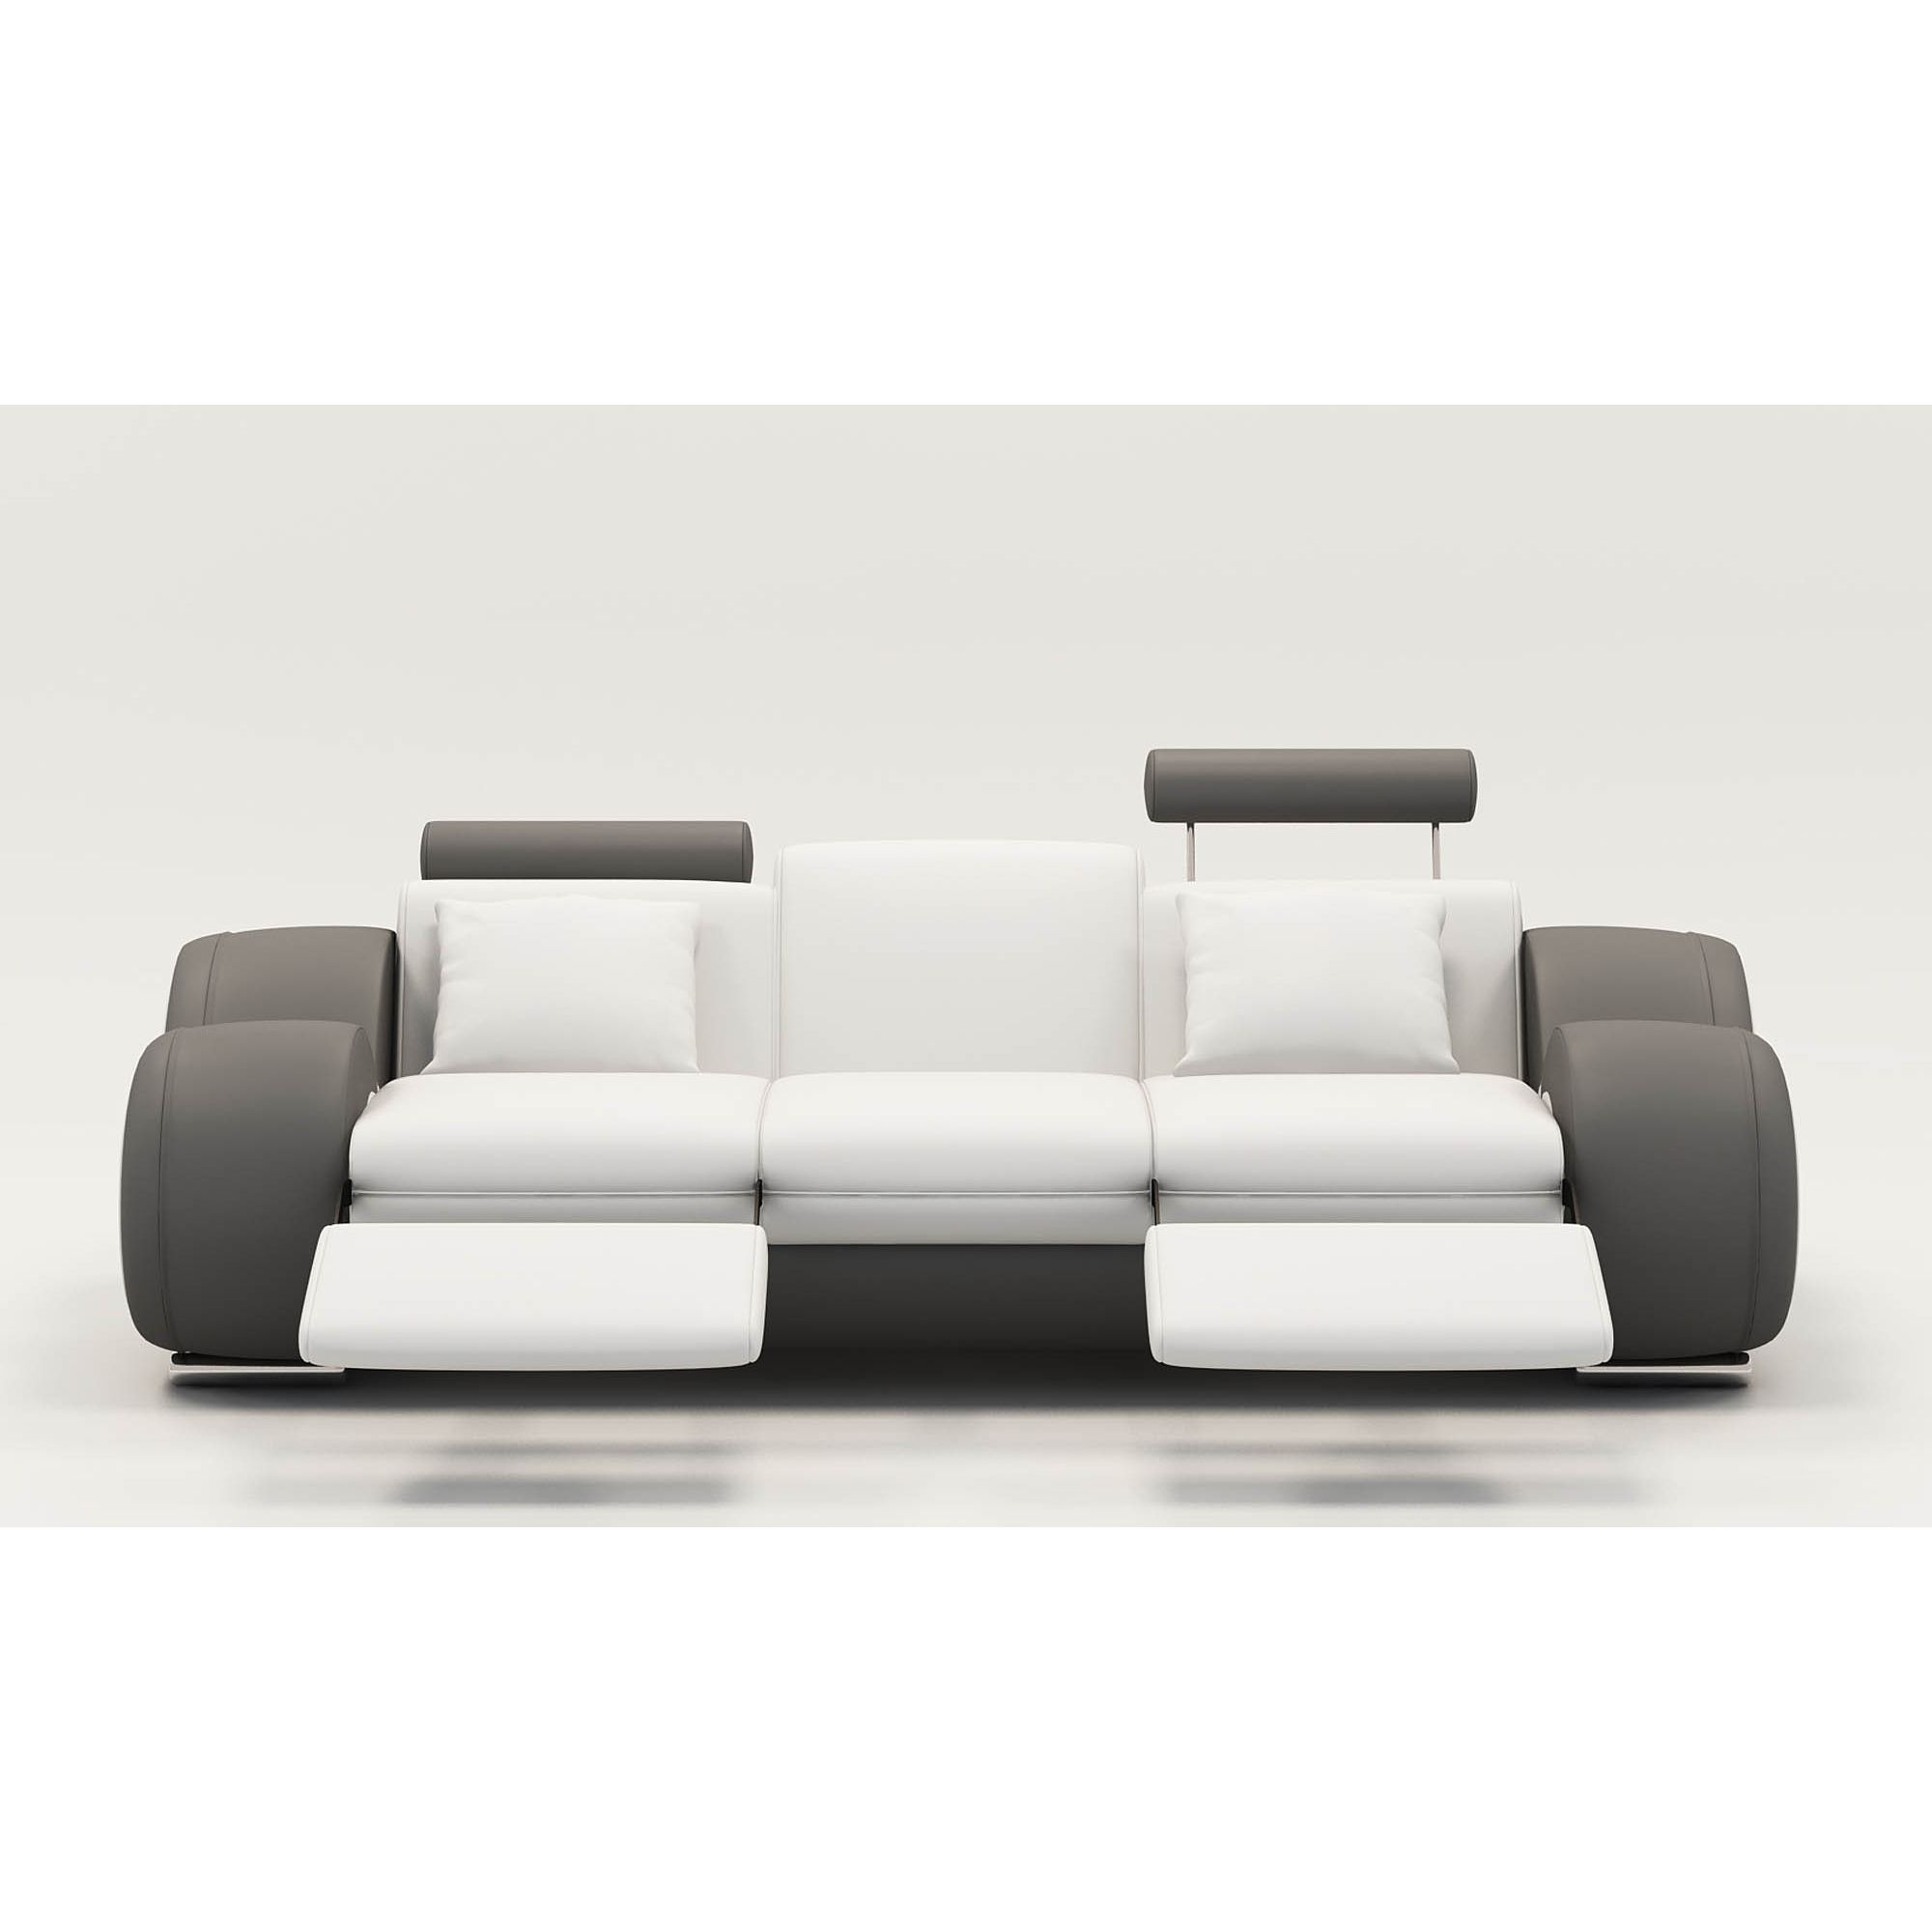 Deco in paris 9 canape design 3 places cuir blanc et - Canape relax 3 places ...